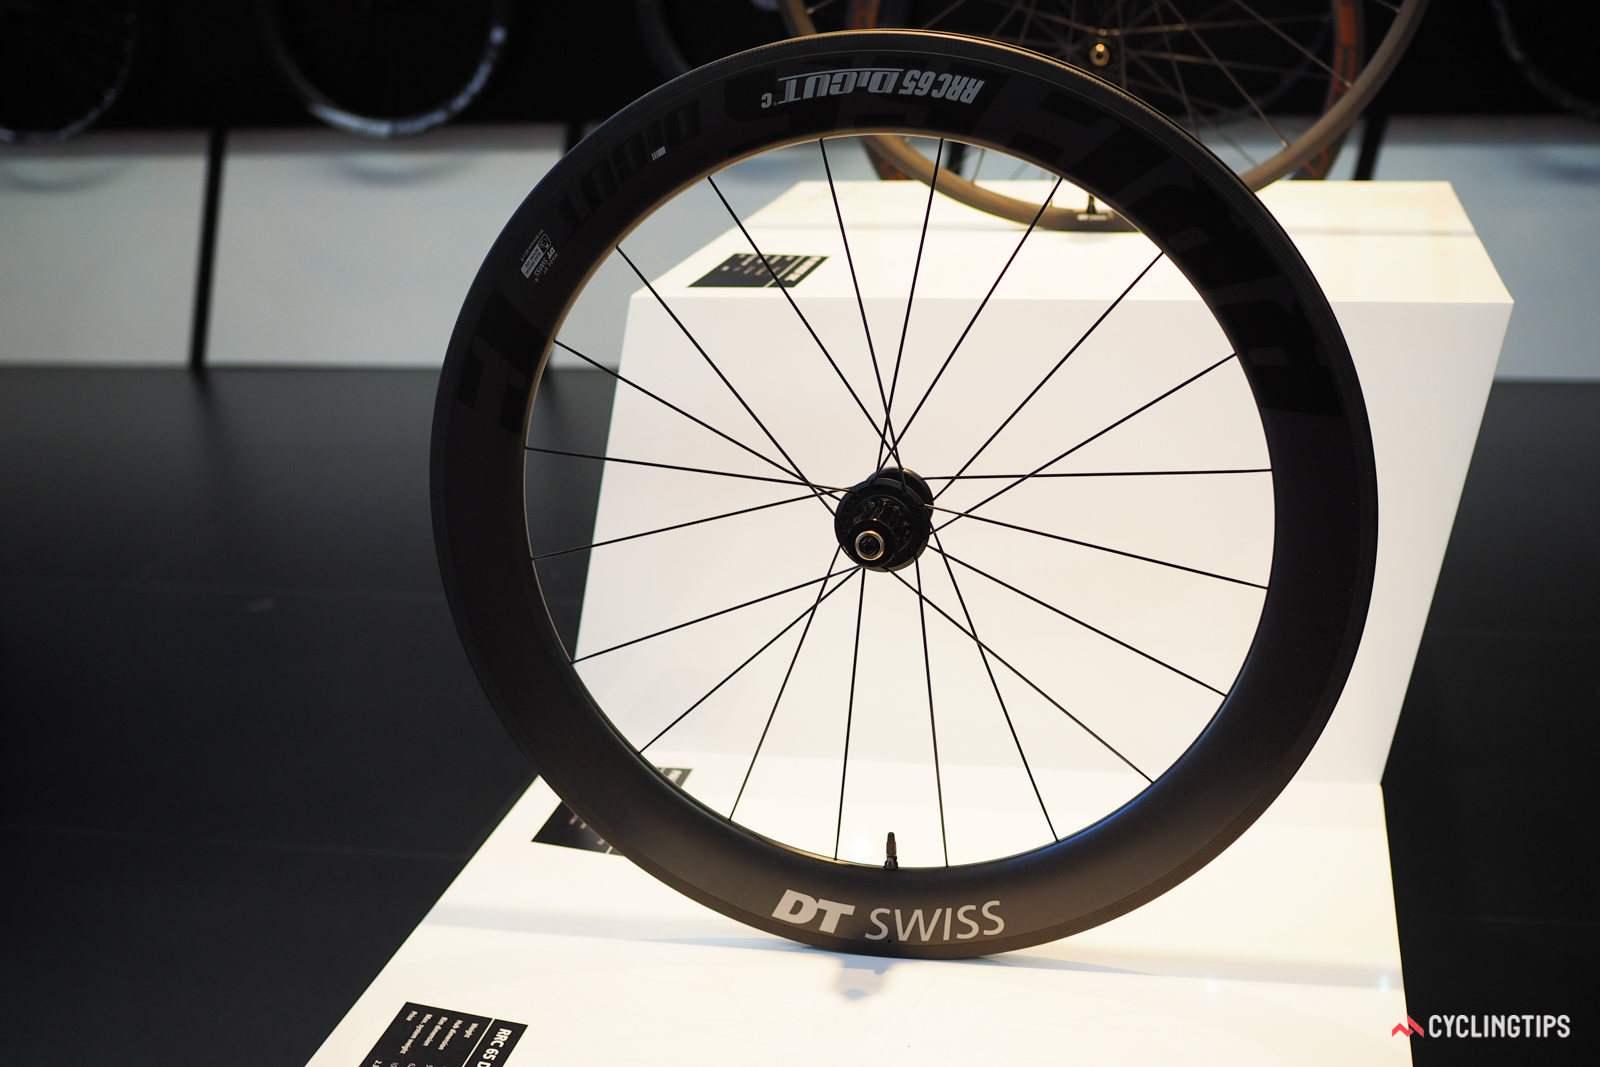 DT Swiss has adopted the more progressive 18mm internal rim width even on aero-profile wheels like the new RRC 65 DiCUT.